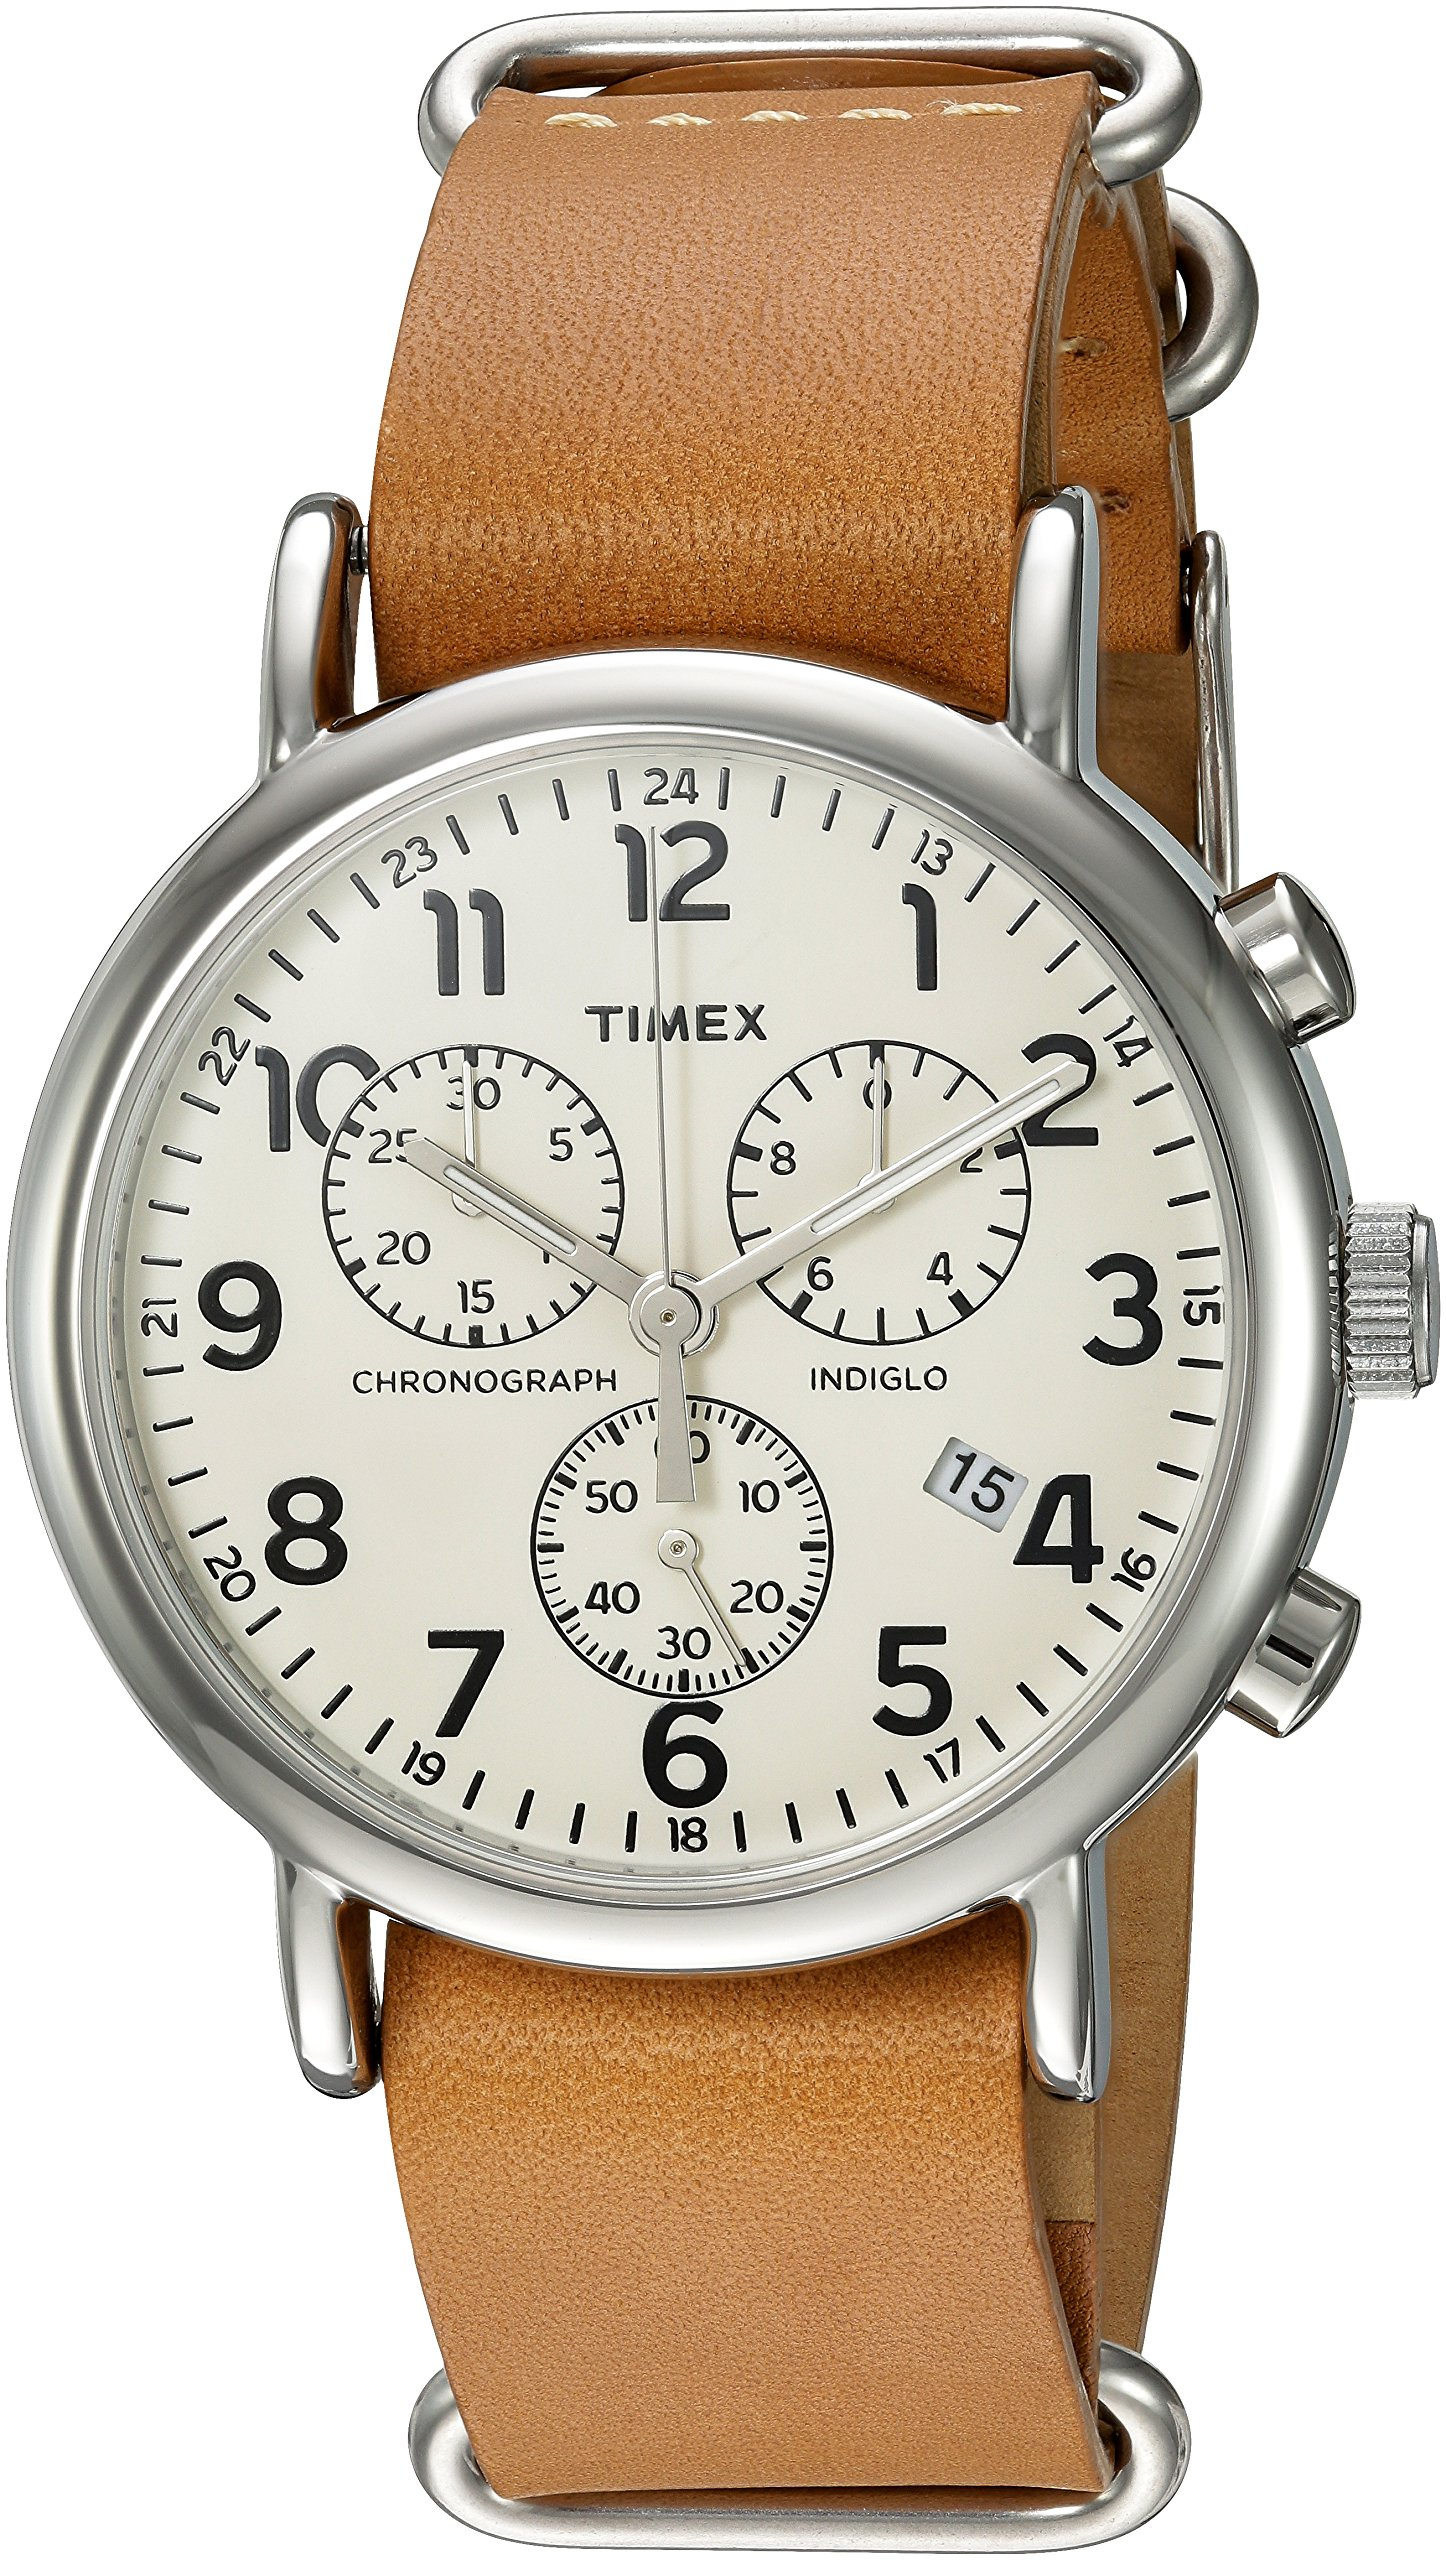 Timex Weekender Chrono Analog-Quartz Watch with Leather Strap, Brown, 20 (Model: TWC063500) by Timex (Image #1)